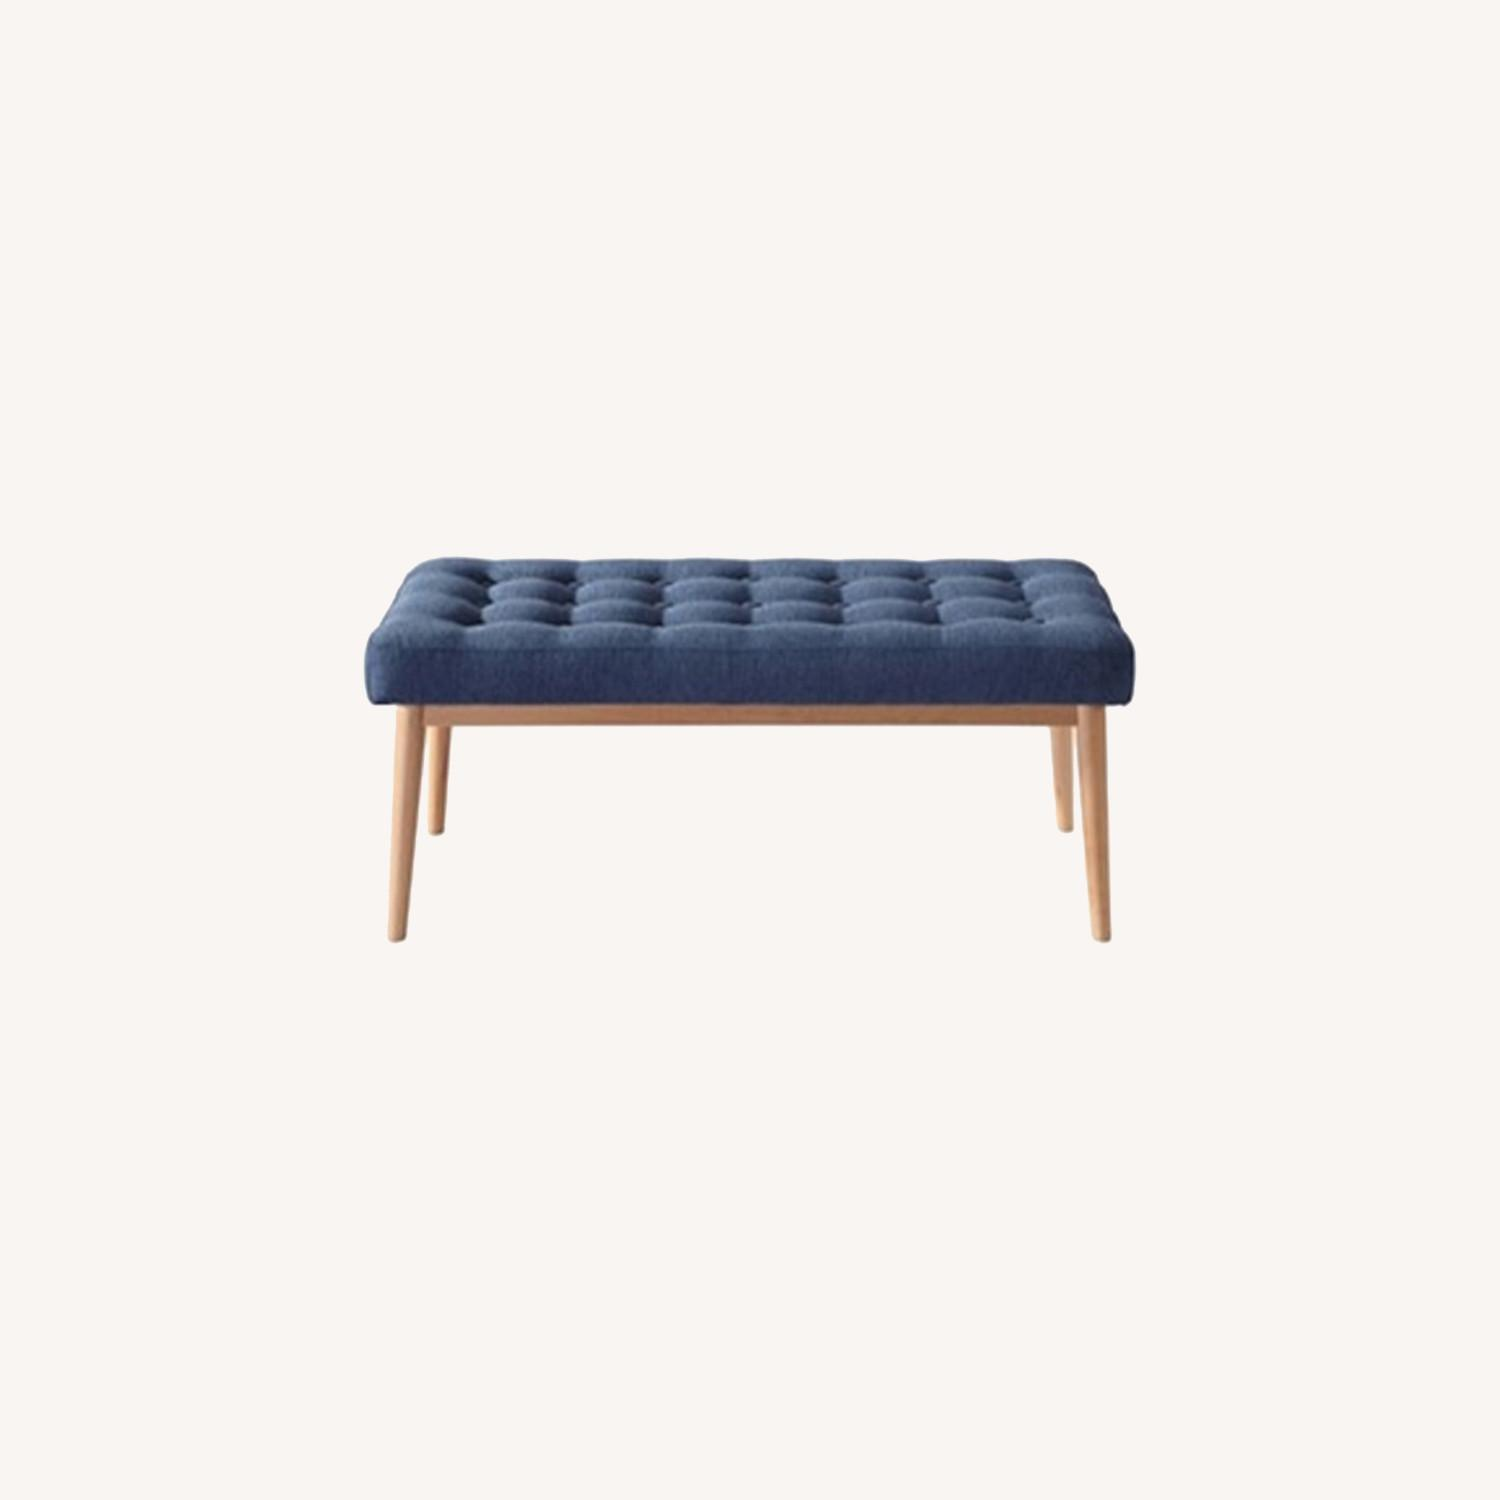 Bench In Blue Cotton Crafted W/ Beech Wood Base - image-7